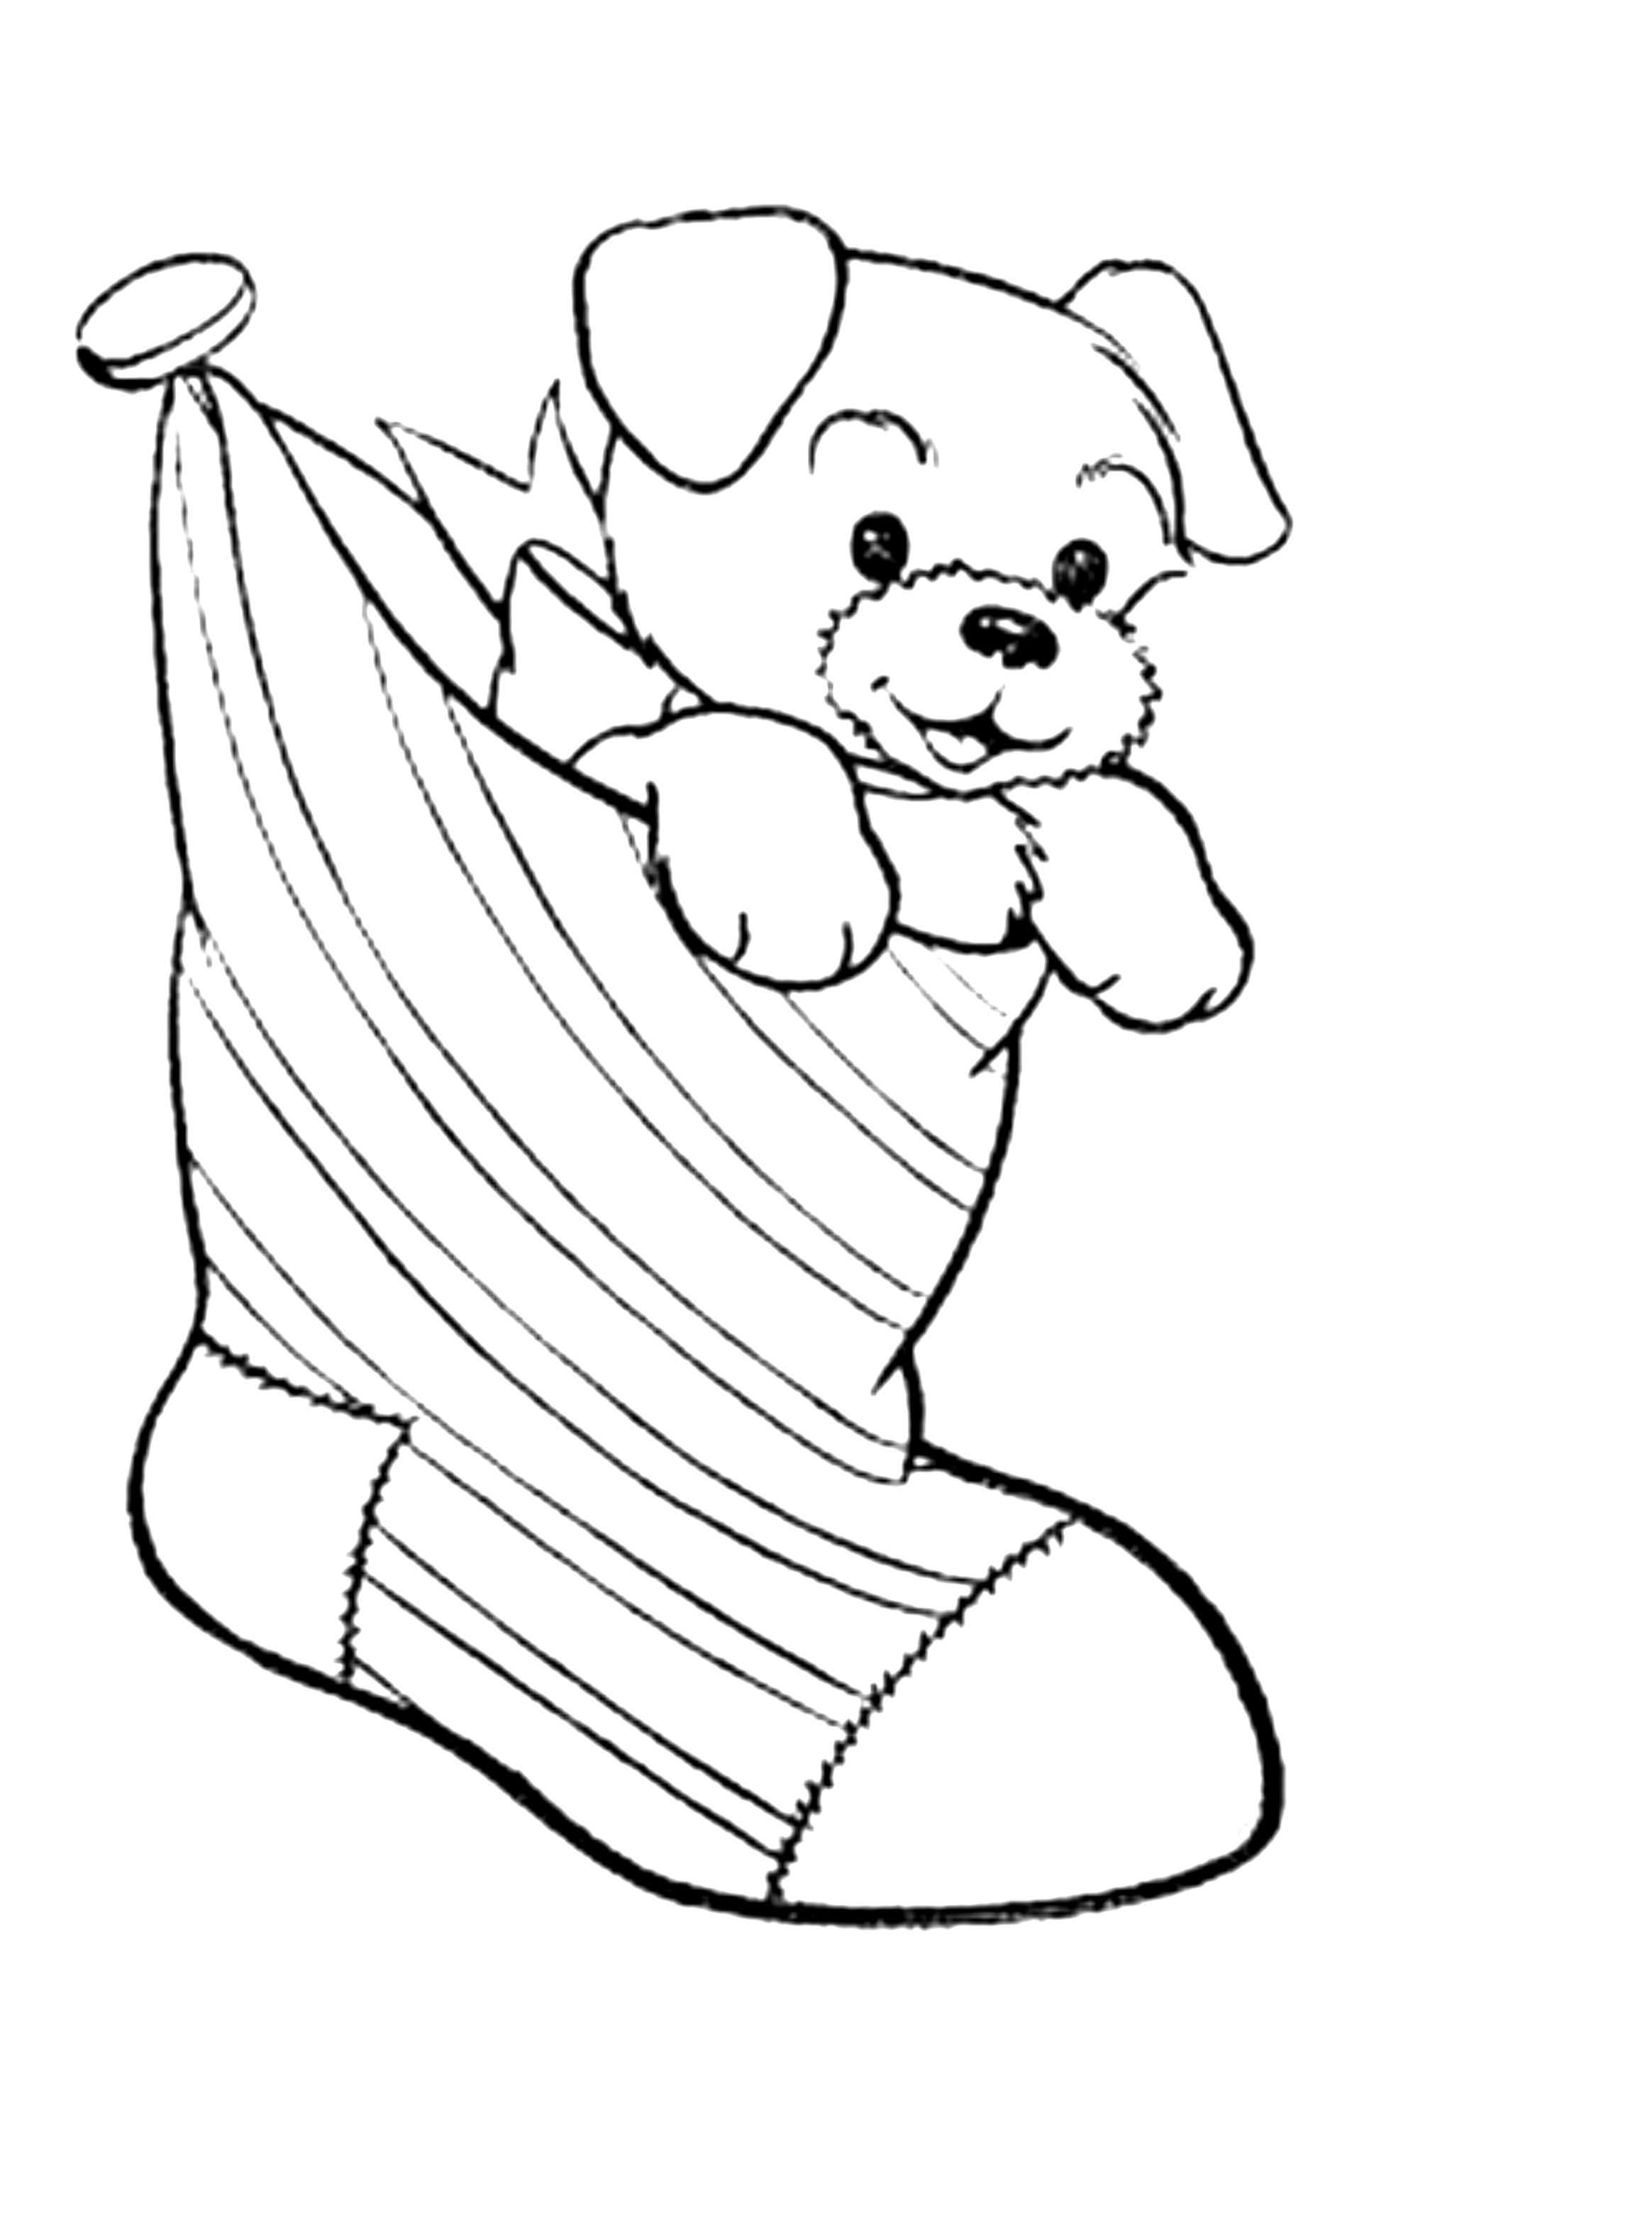 Puppy Coloring Pages  Gallery 19q - Free For kids